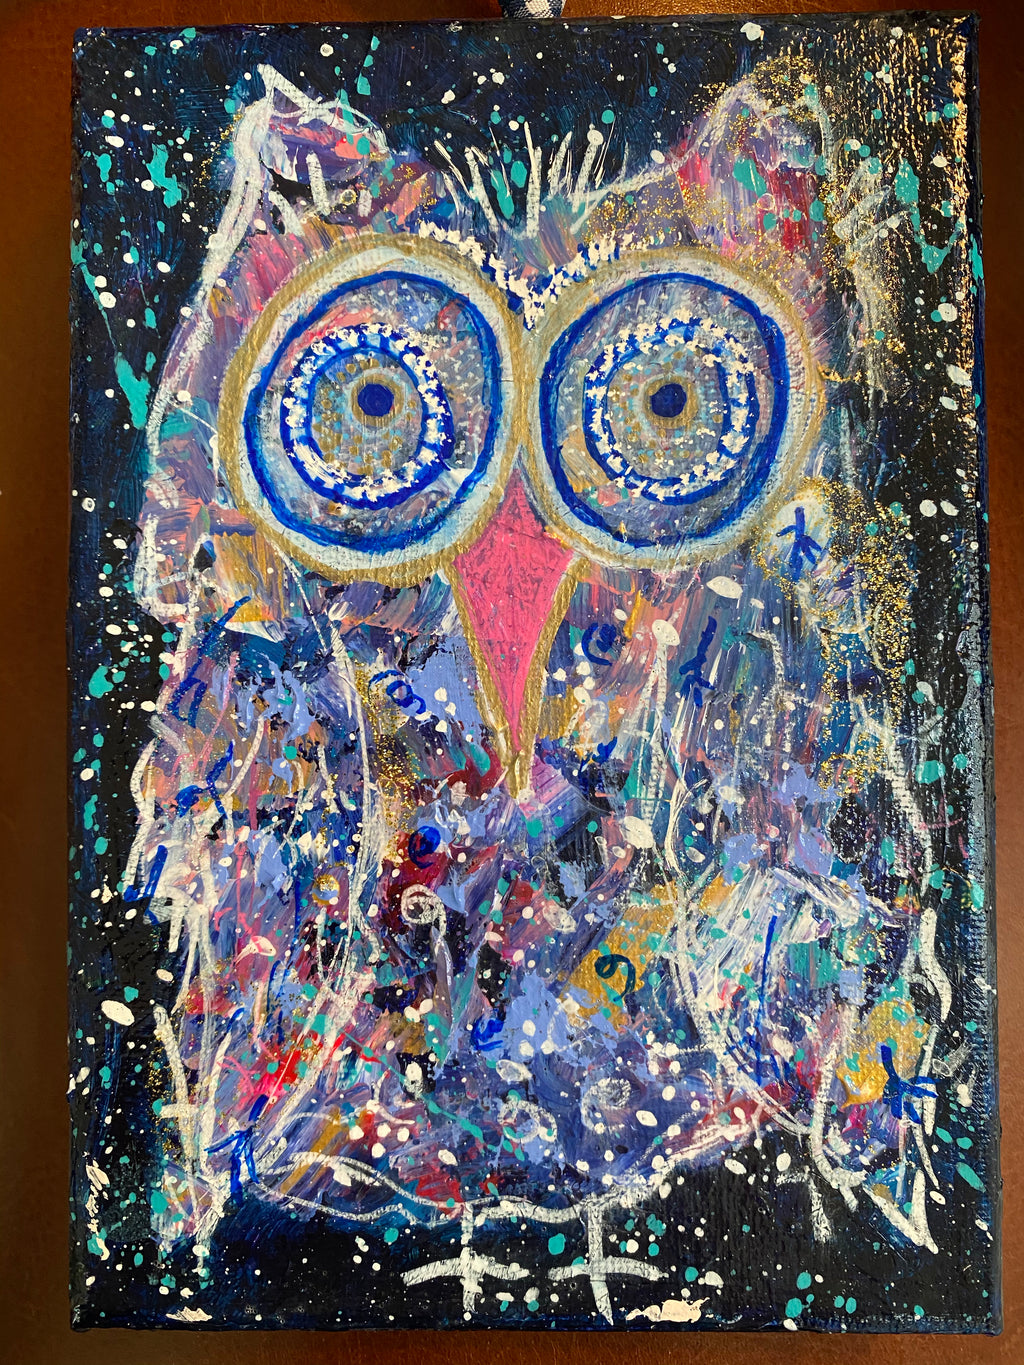 Meet Lawrence, Twinkle Owl, 5x7